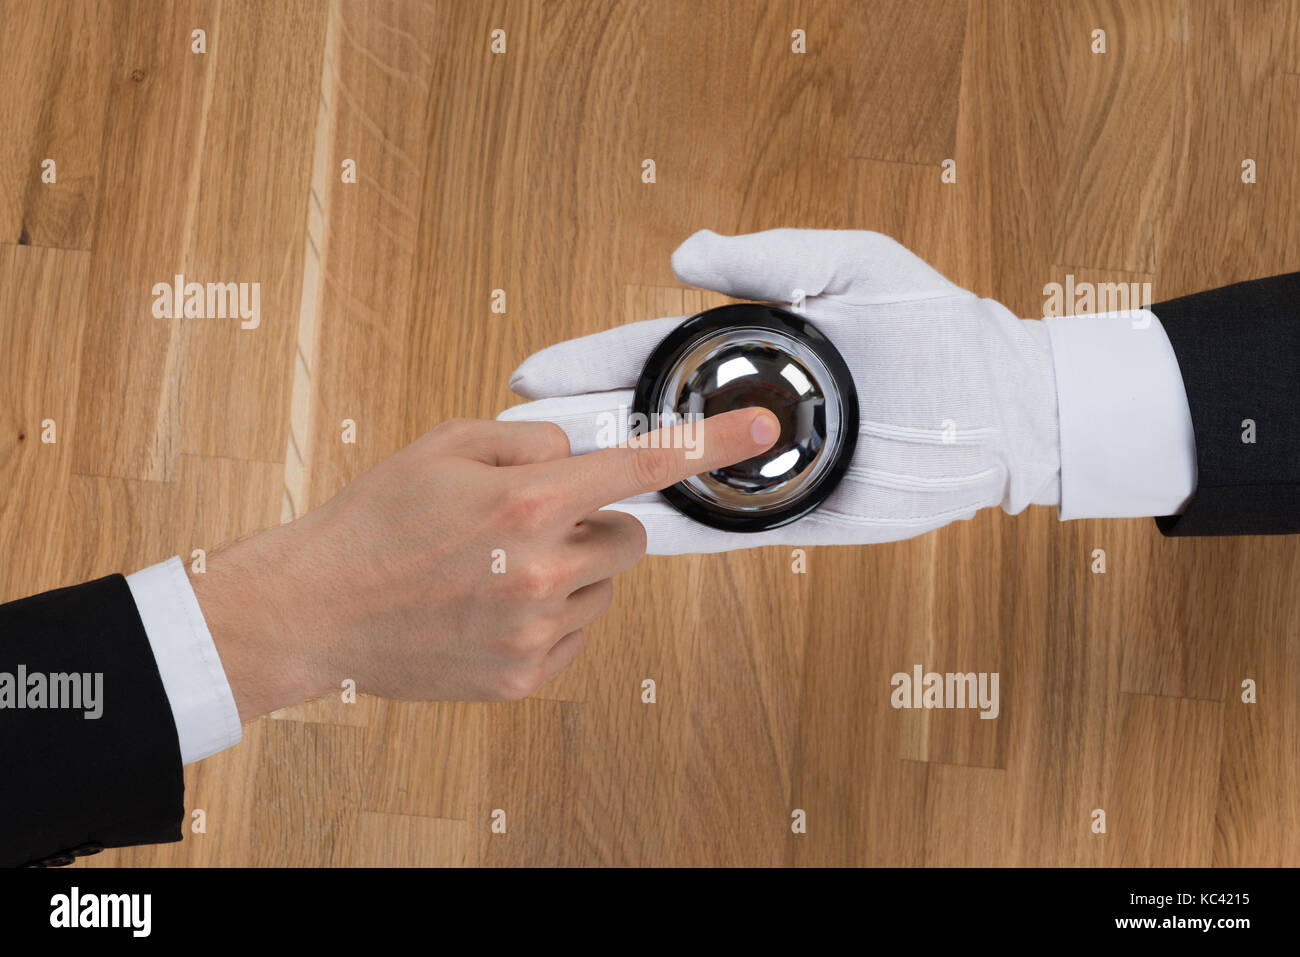 Cropped image of businessman ringing in service bell held by bellboy at reception counter - Stock Image